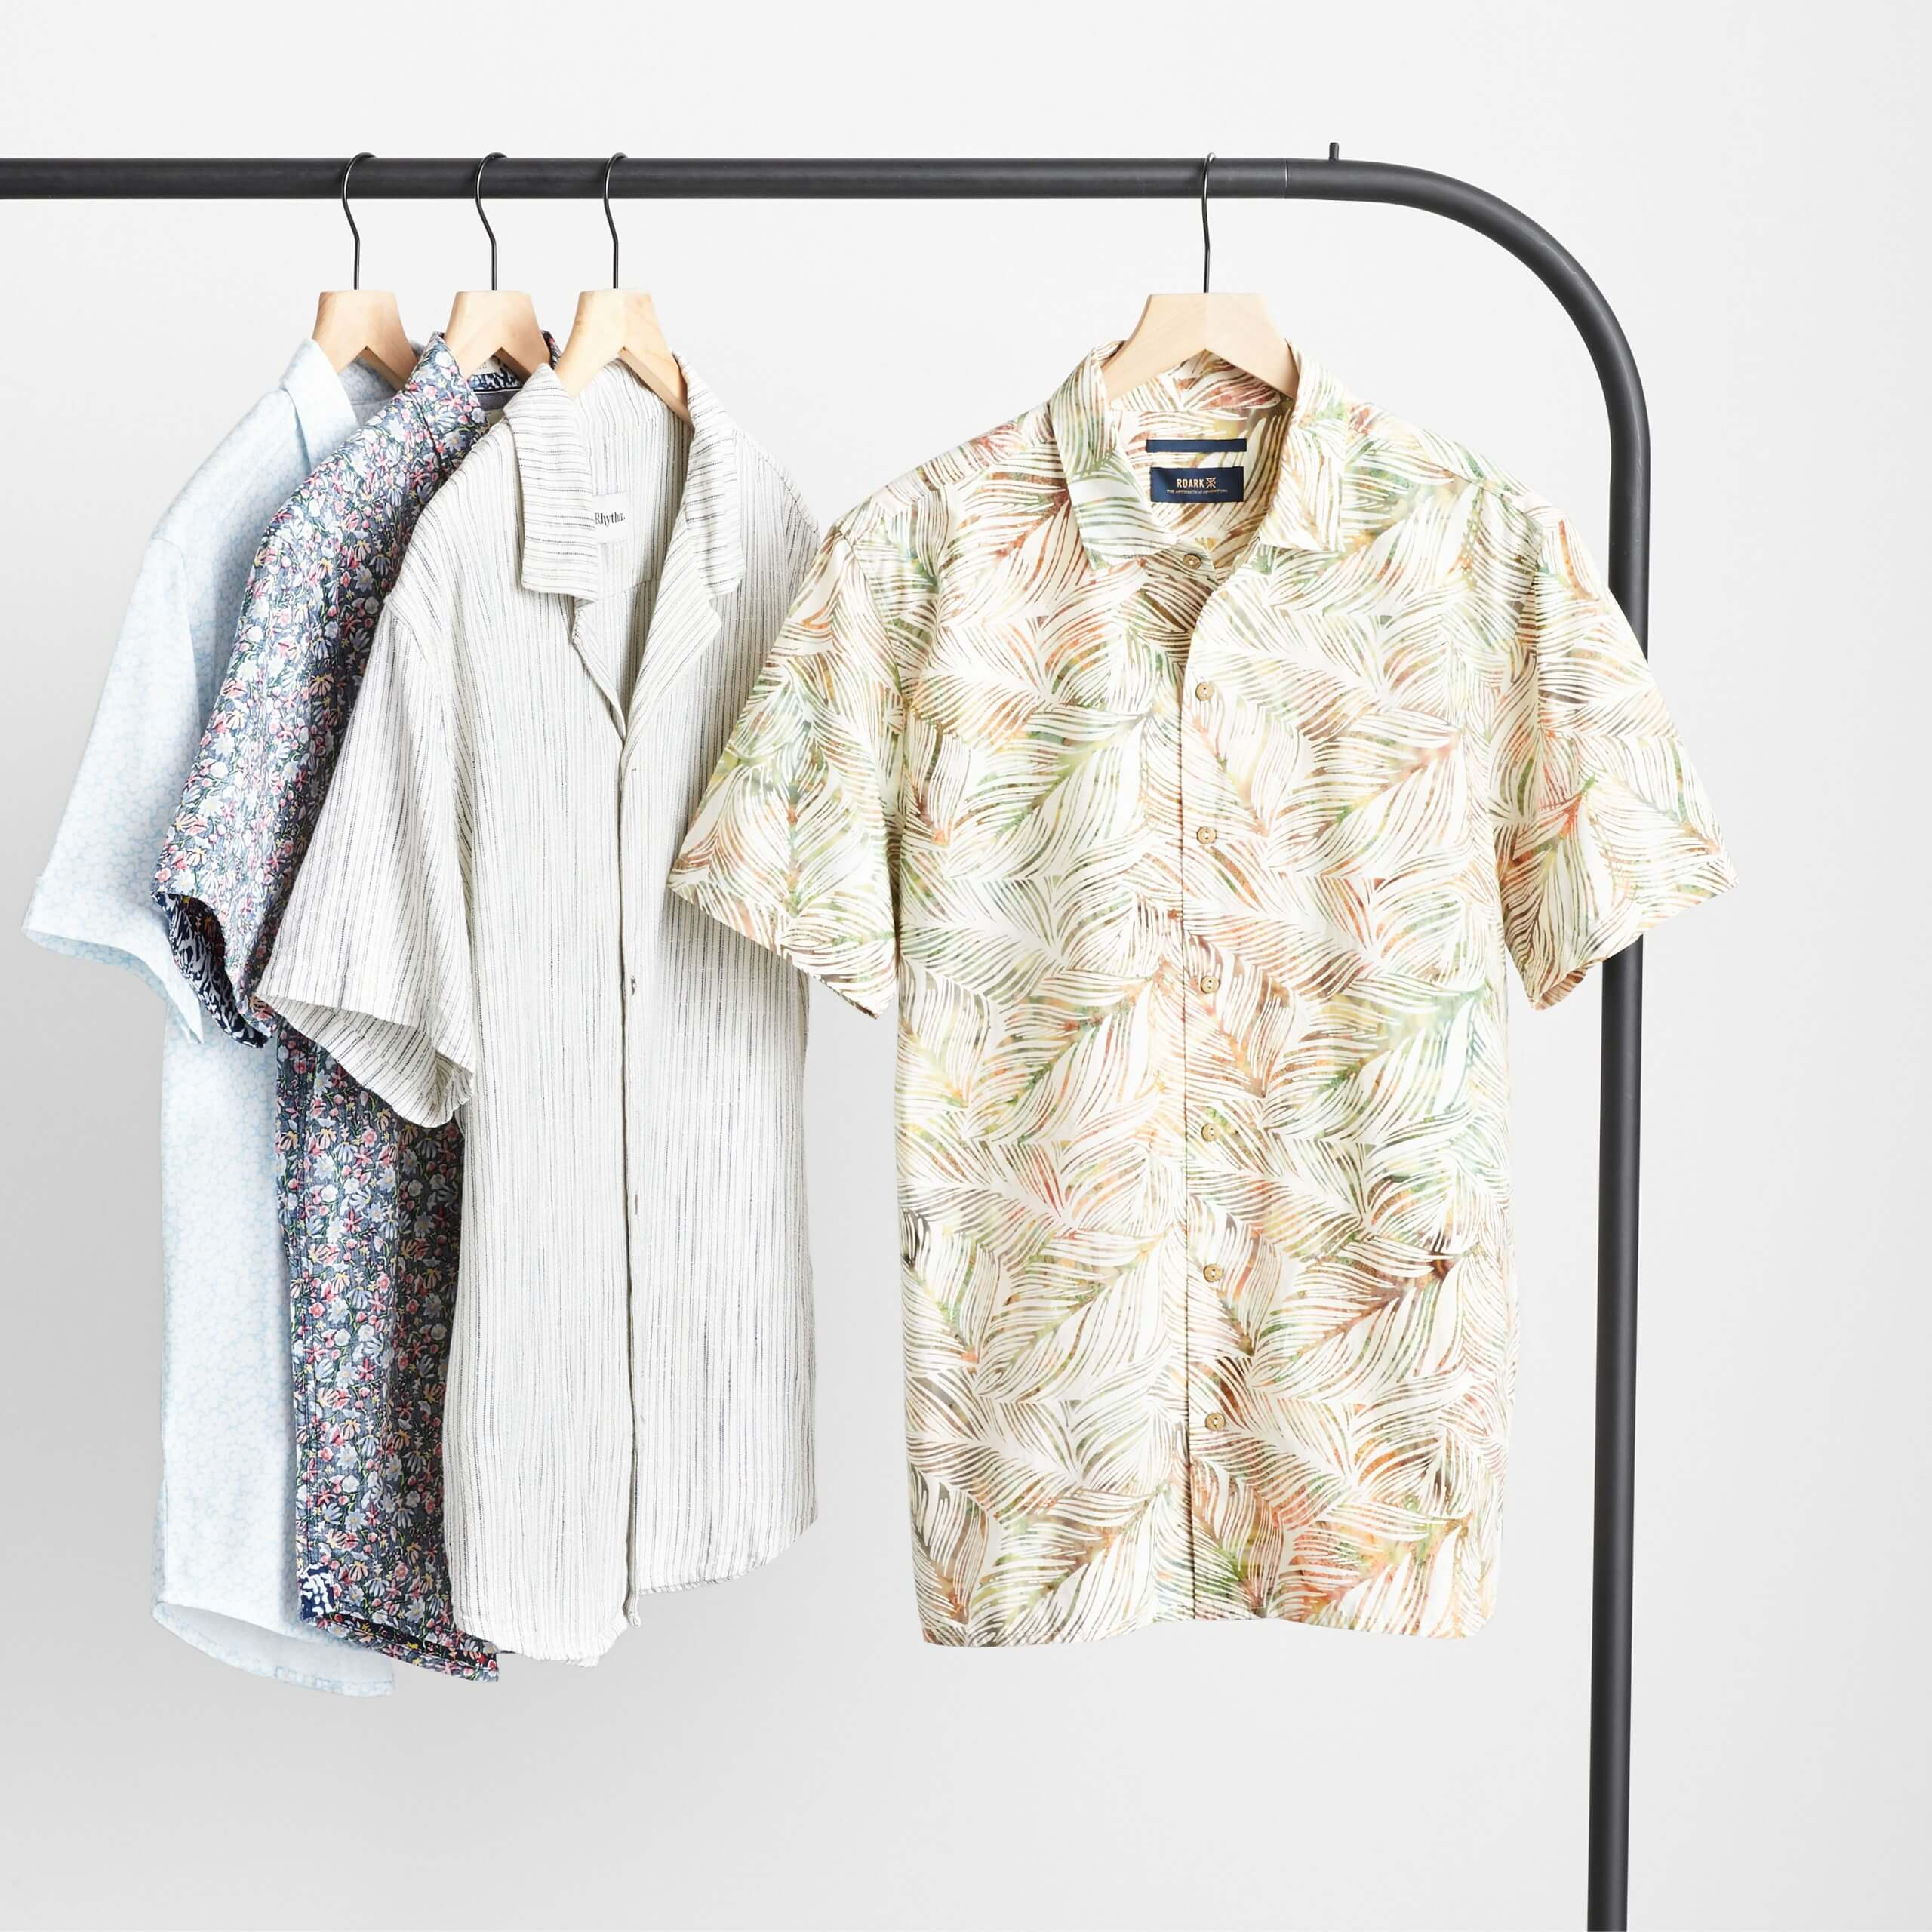 Stitch Fix Men's four patterned short-sleeved button-downs hanging on a black rack.